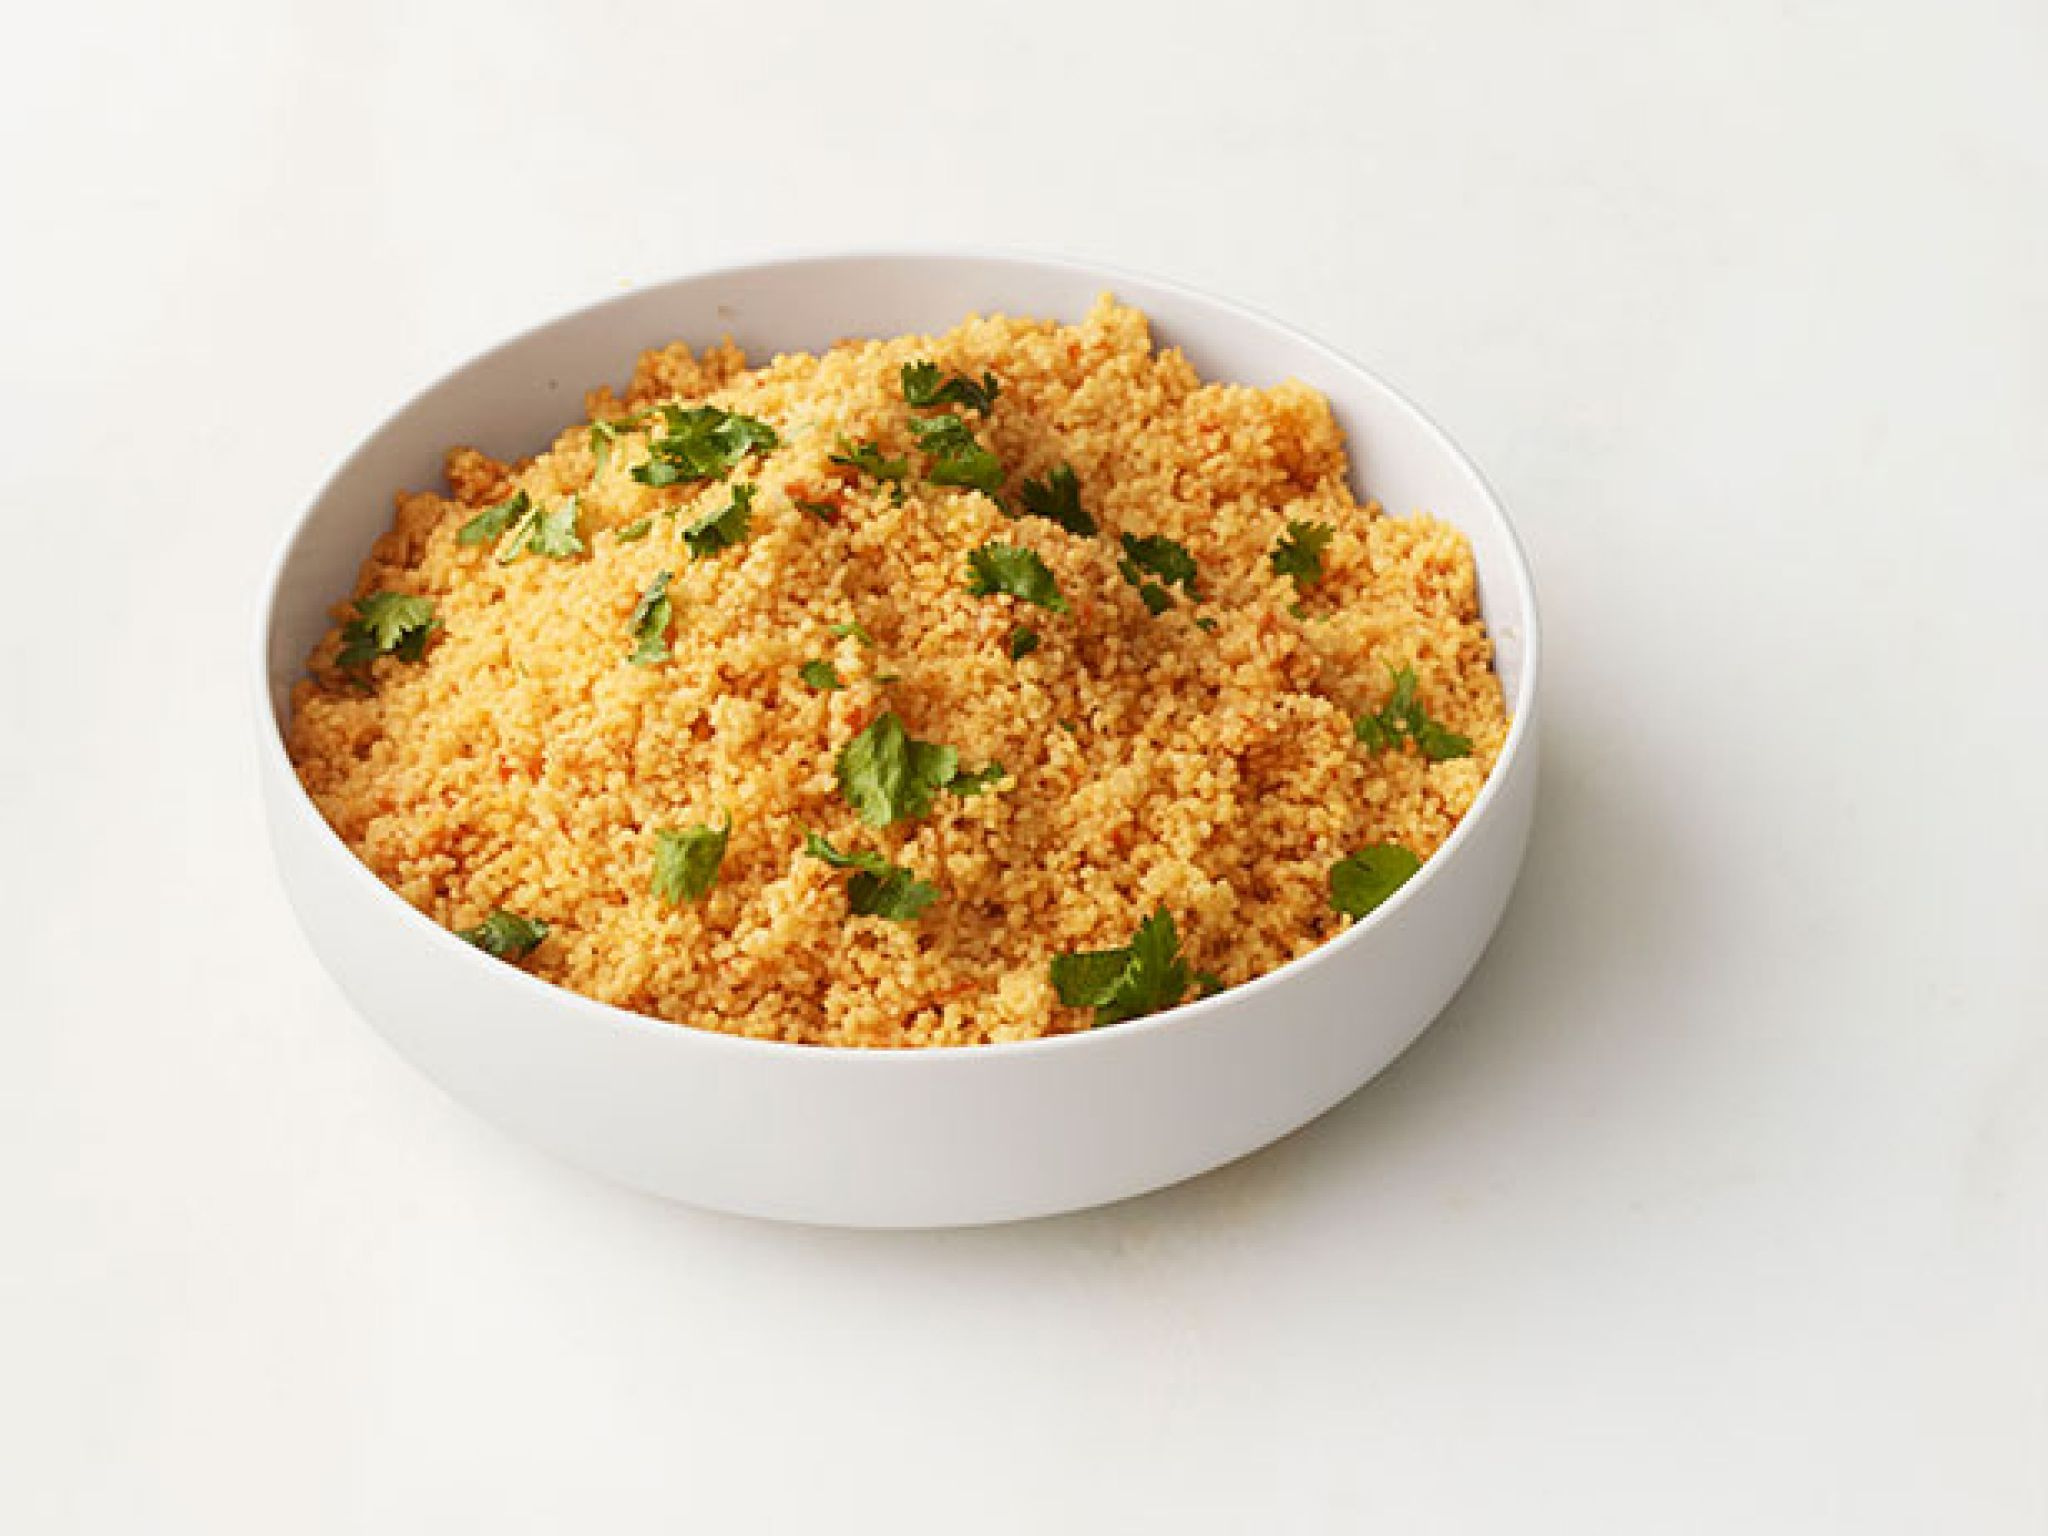 Tomato ginger couscous recipe from food network kitchen via food tomato ginger couscous recipe from food network kitchen via food network forumfinder Gallery